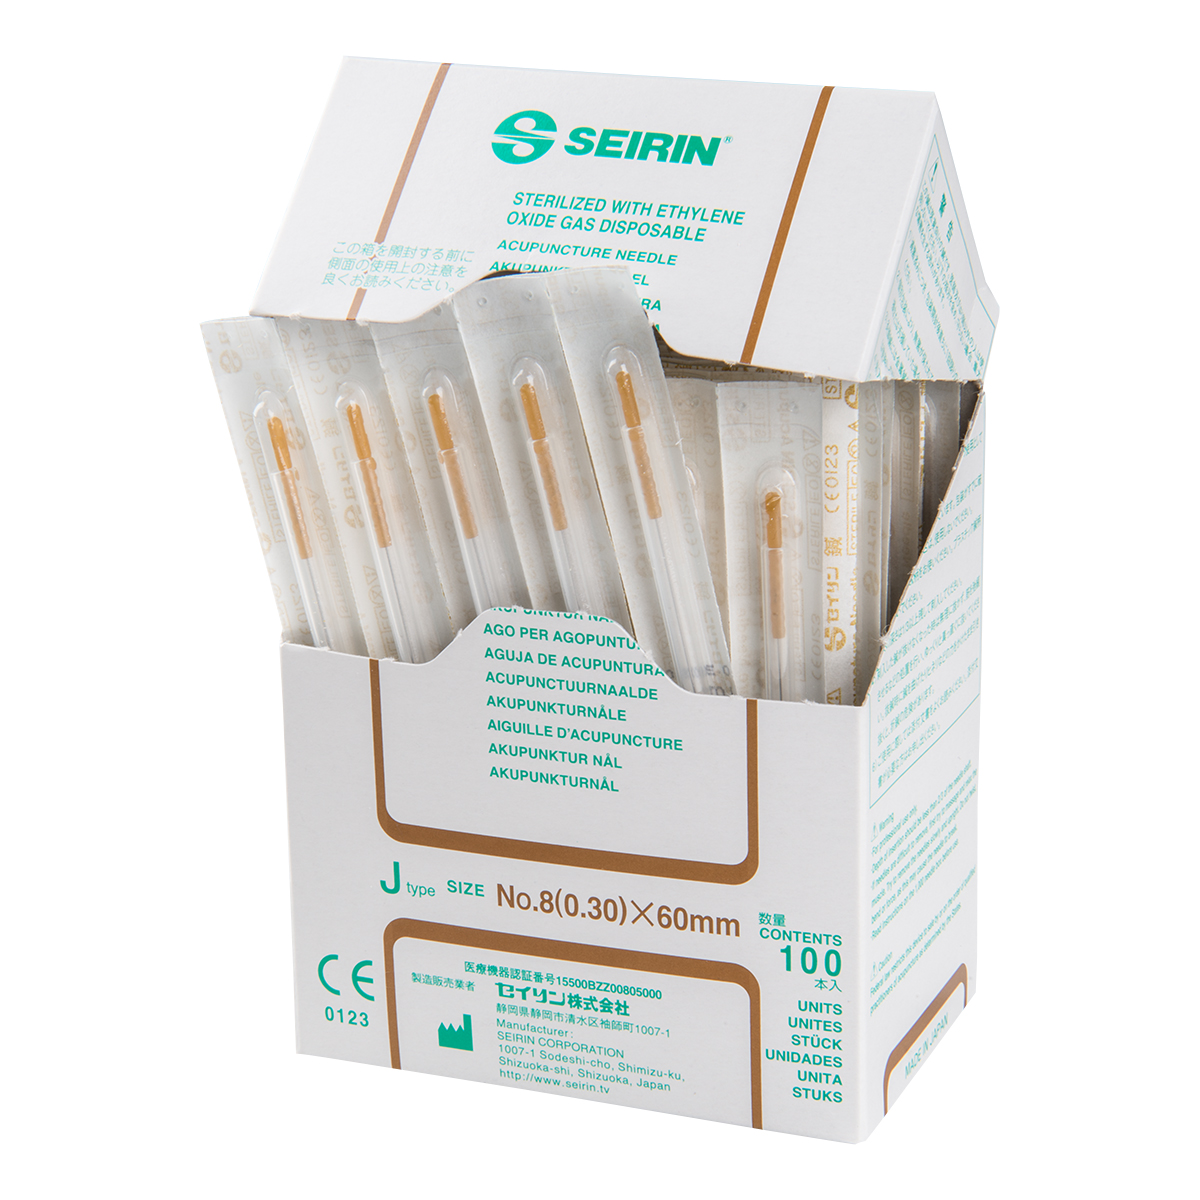 All SEIRIN Needles Are Tested to Stringent Safety Standards